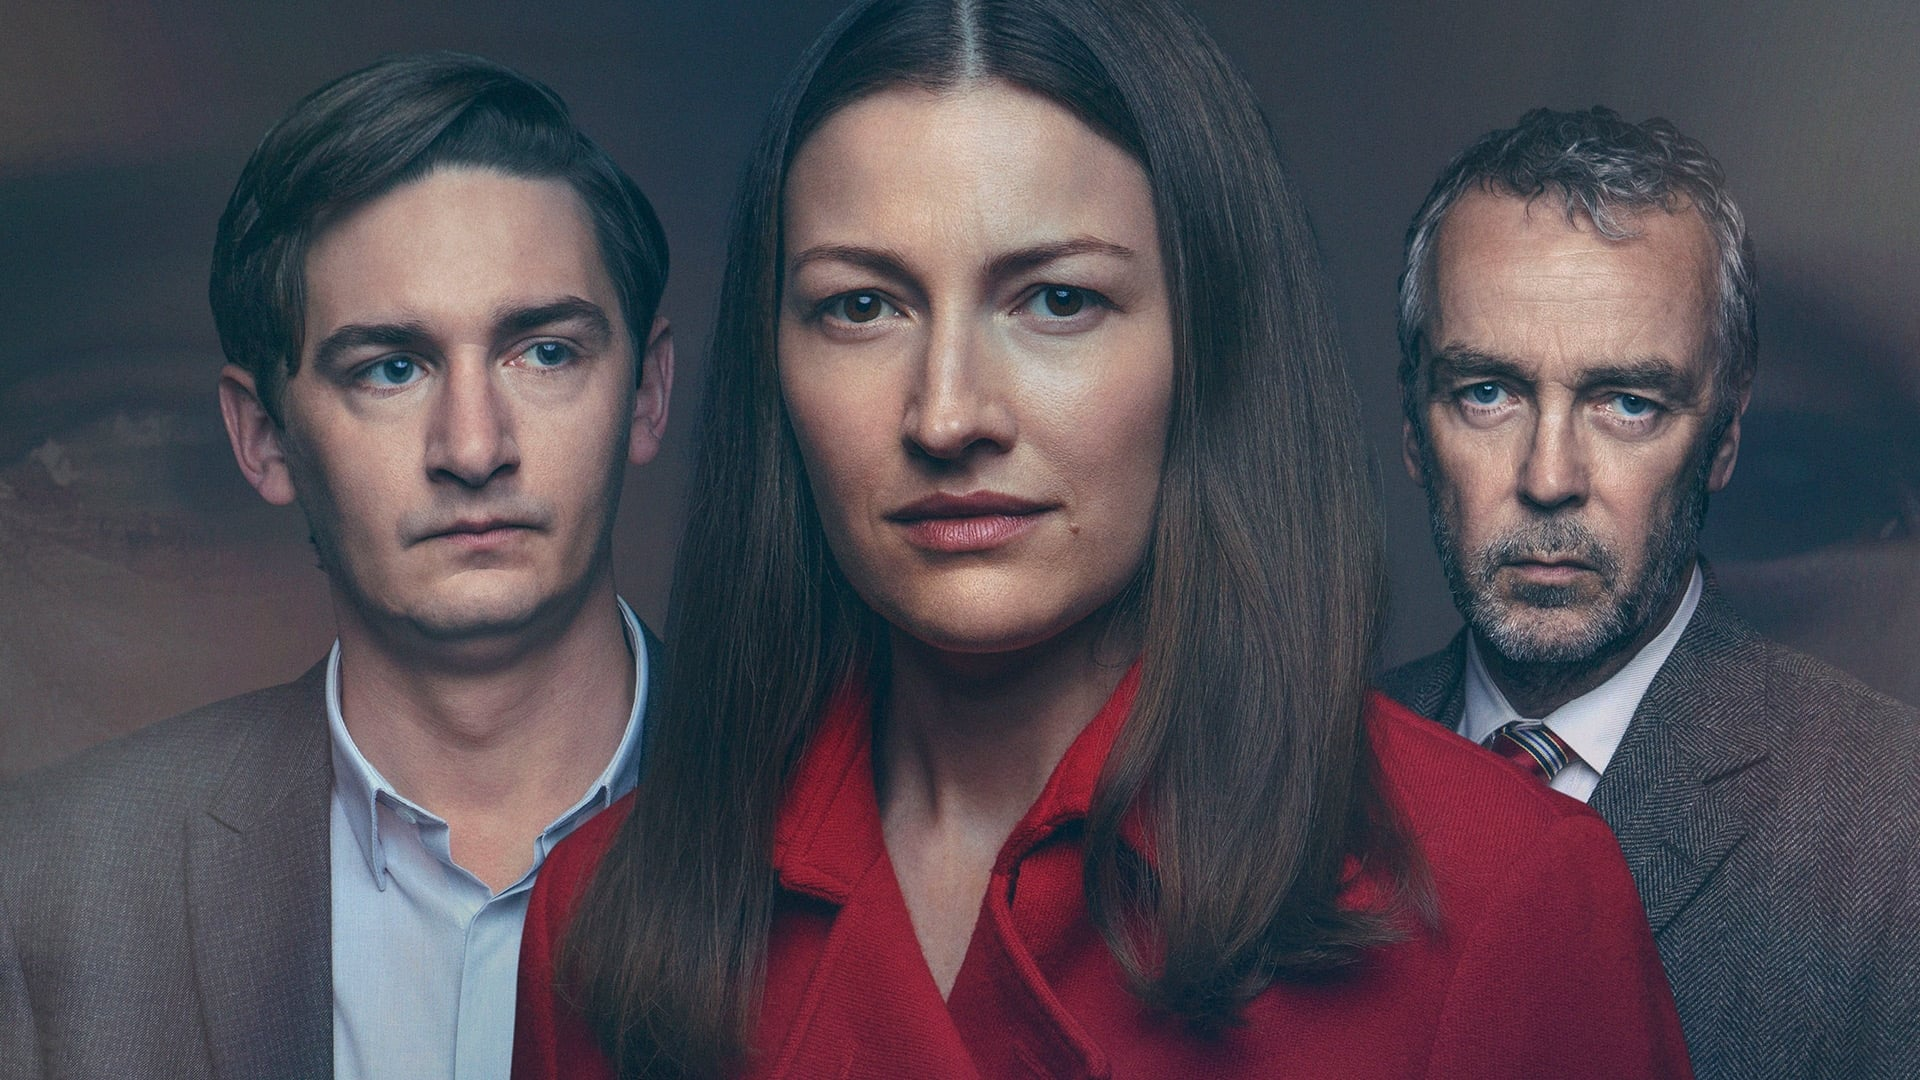 Misdaadserie The Victim in juli op NPO Start Plus